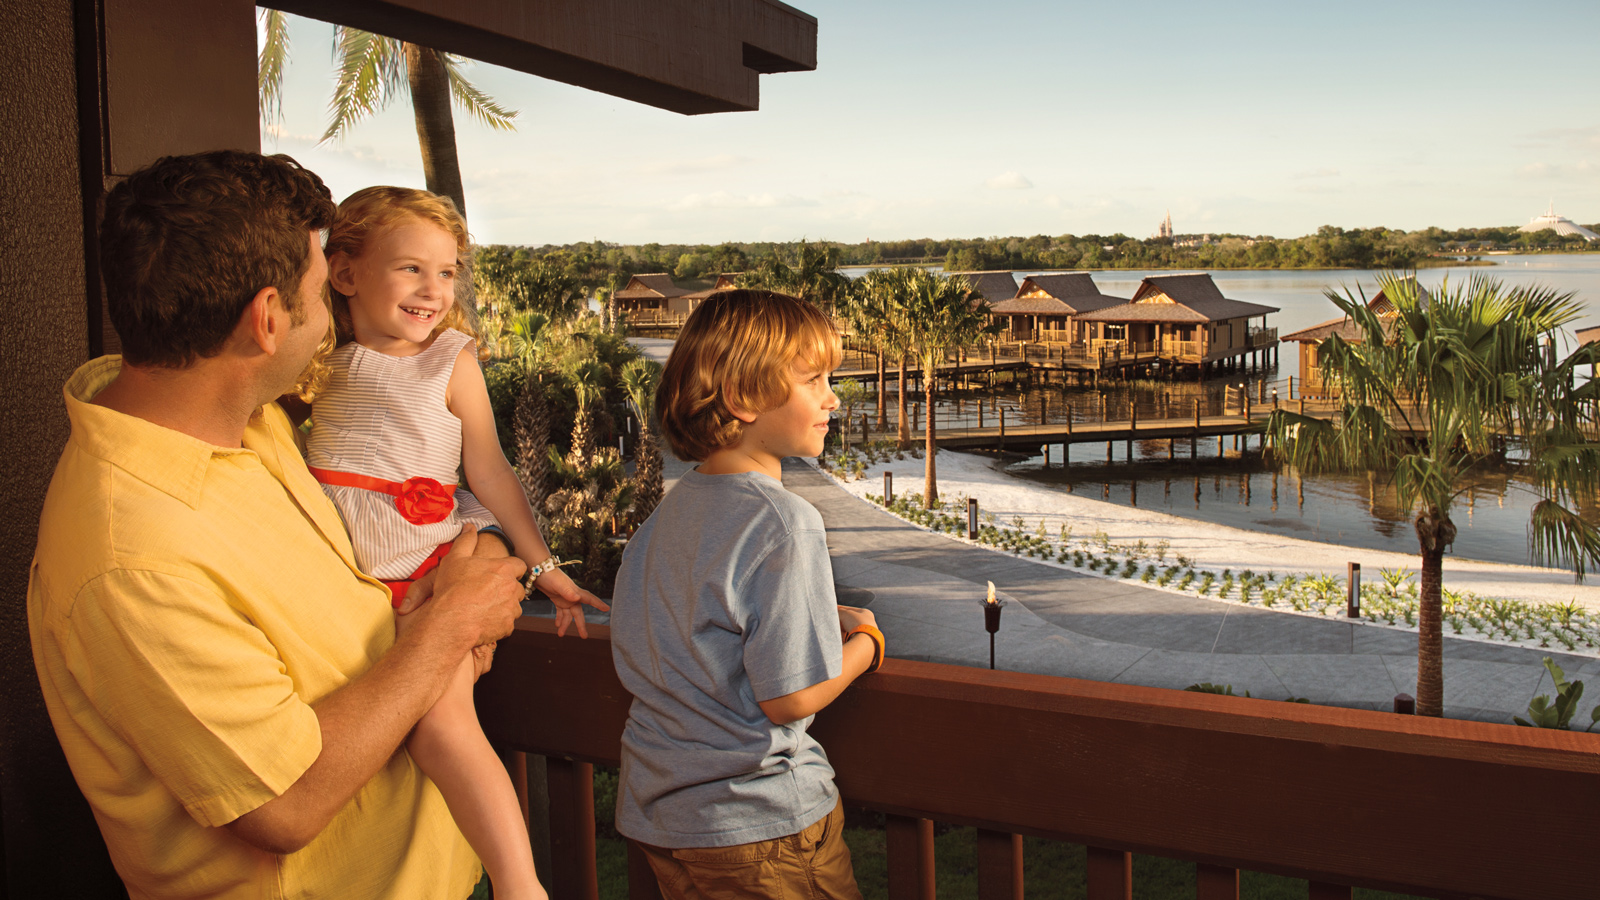 Disney's Polynesian Villas & Bungalows: Fun for All Ages